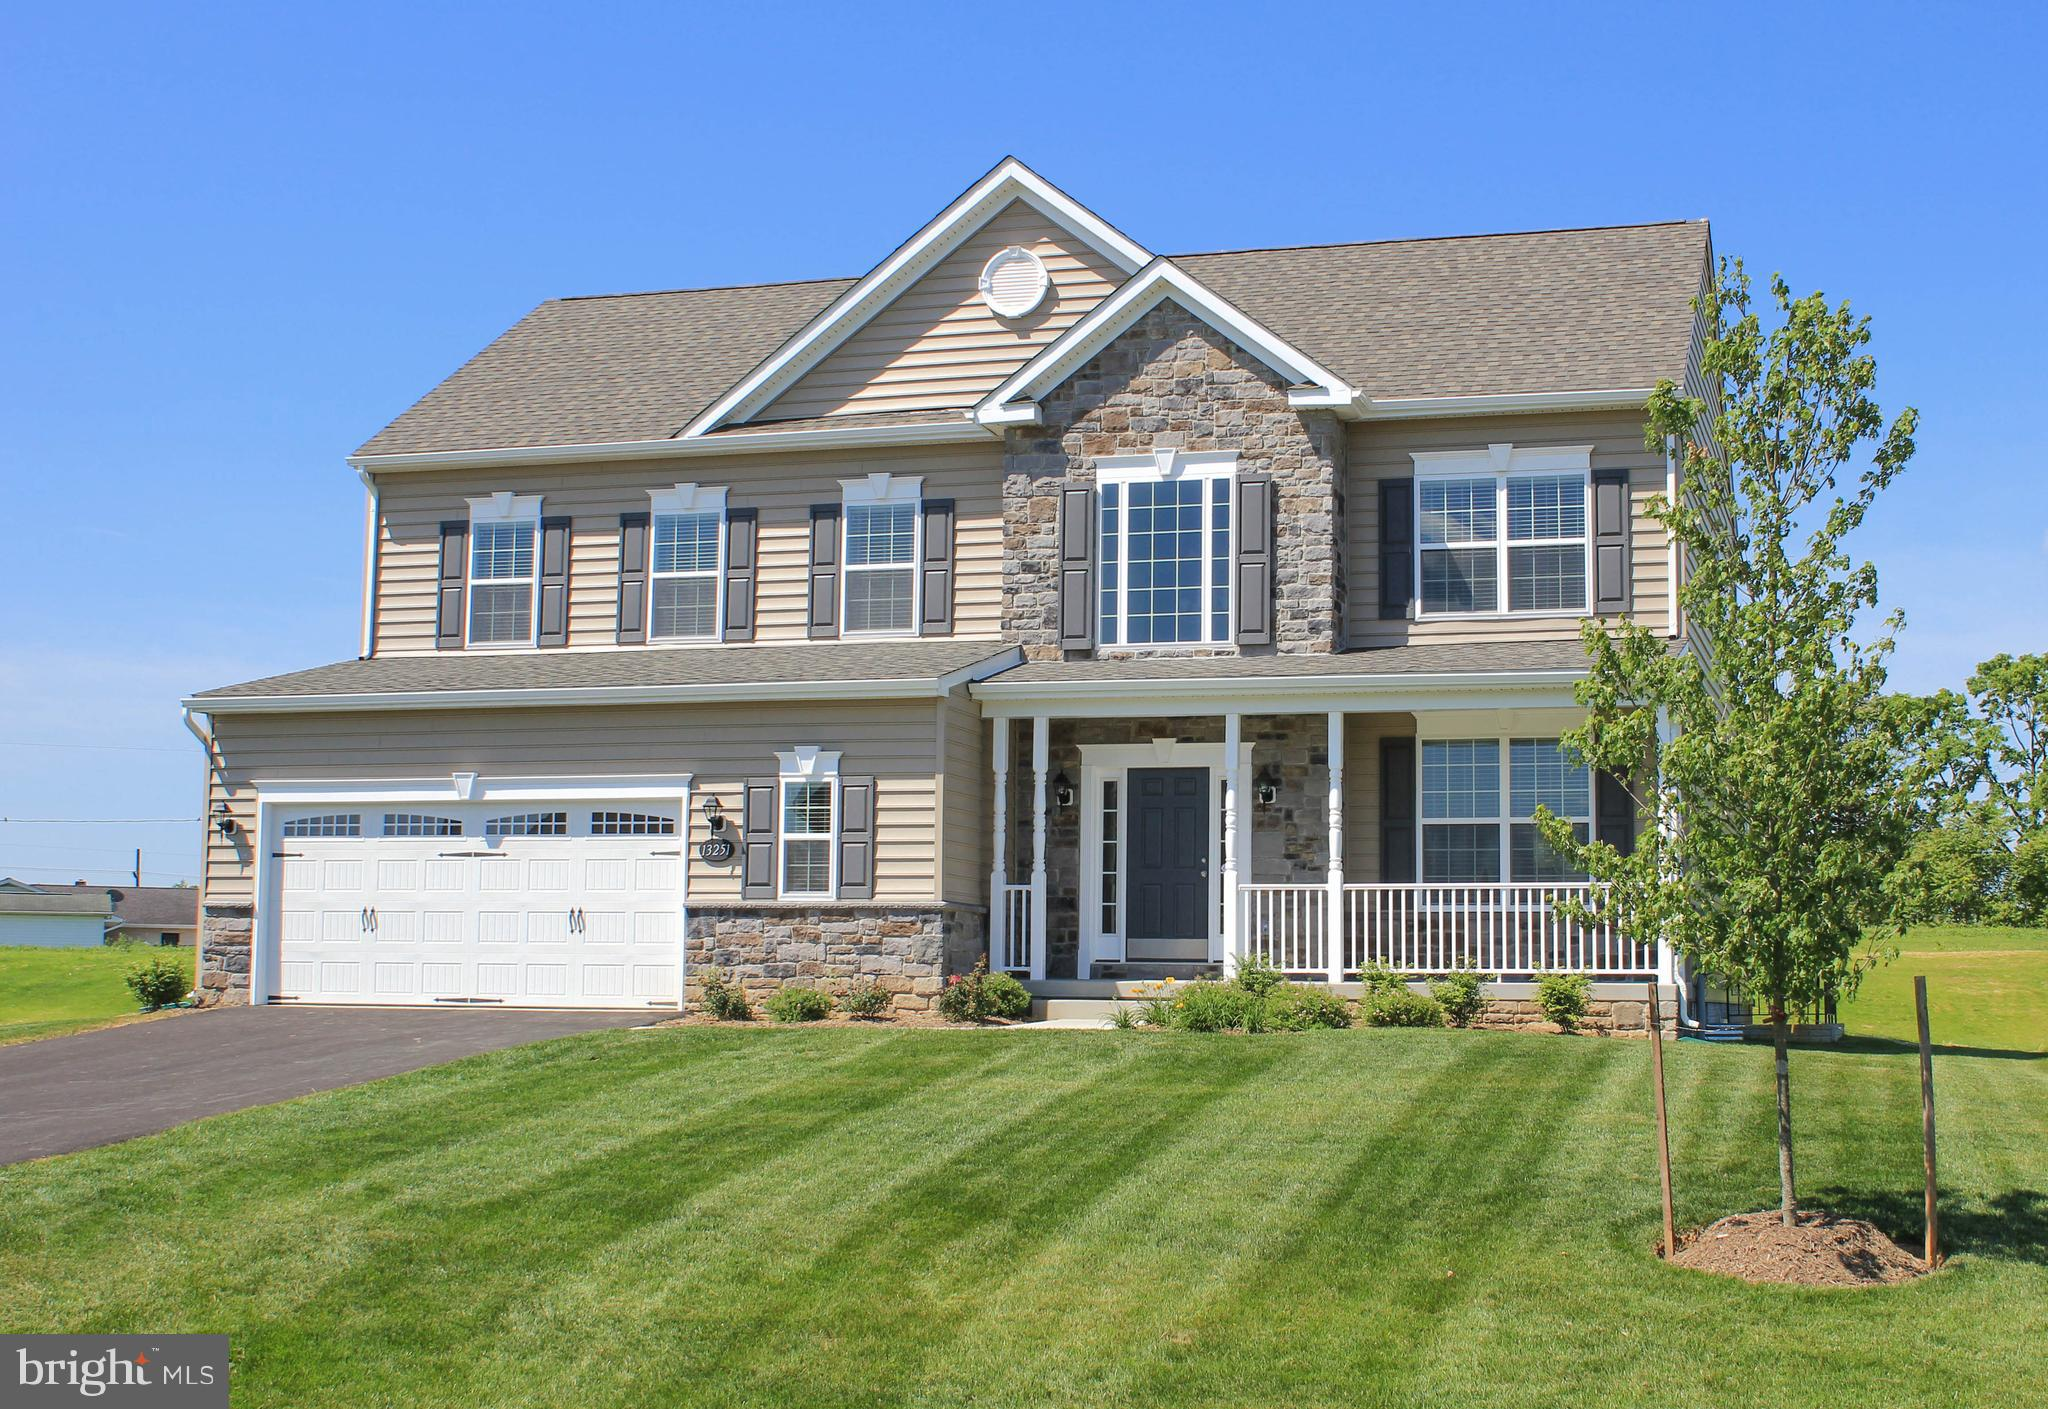 113 DORCHESTER DRIVE, FALLING WATERS, WV 25419